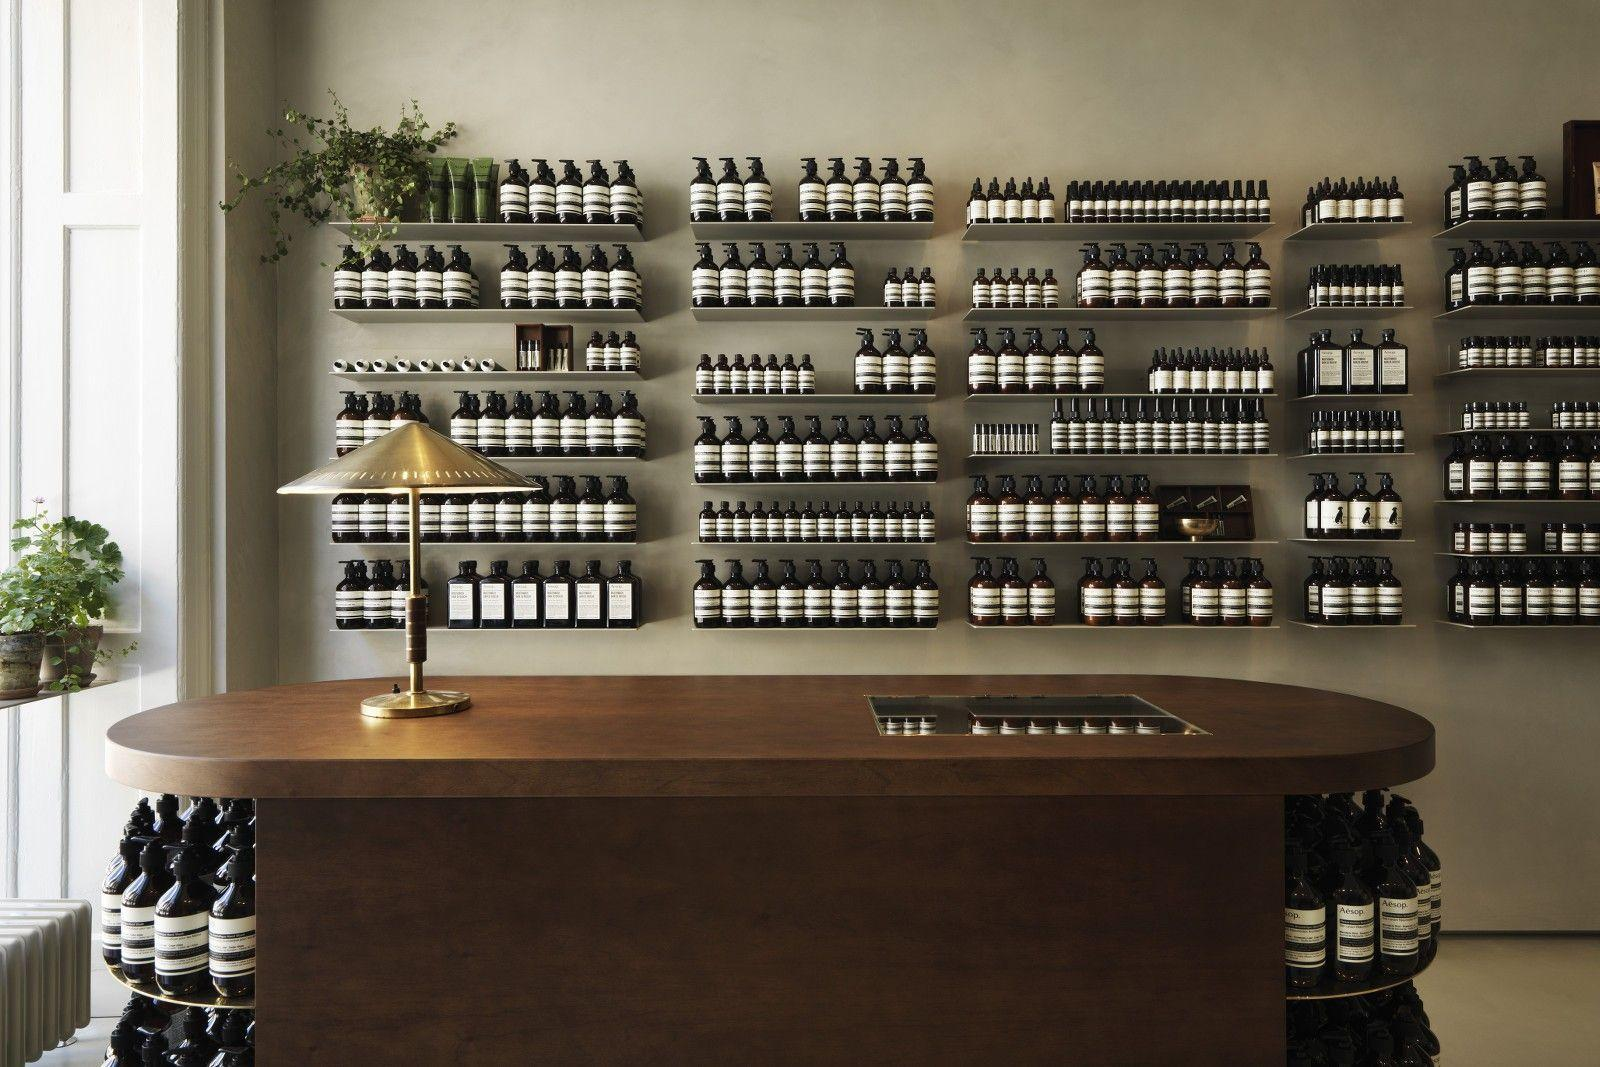 Success Stories: How Aesop Leverages Its Bricks And Mortar Stores